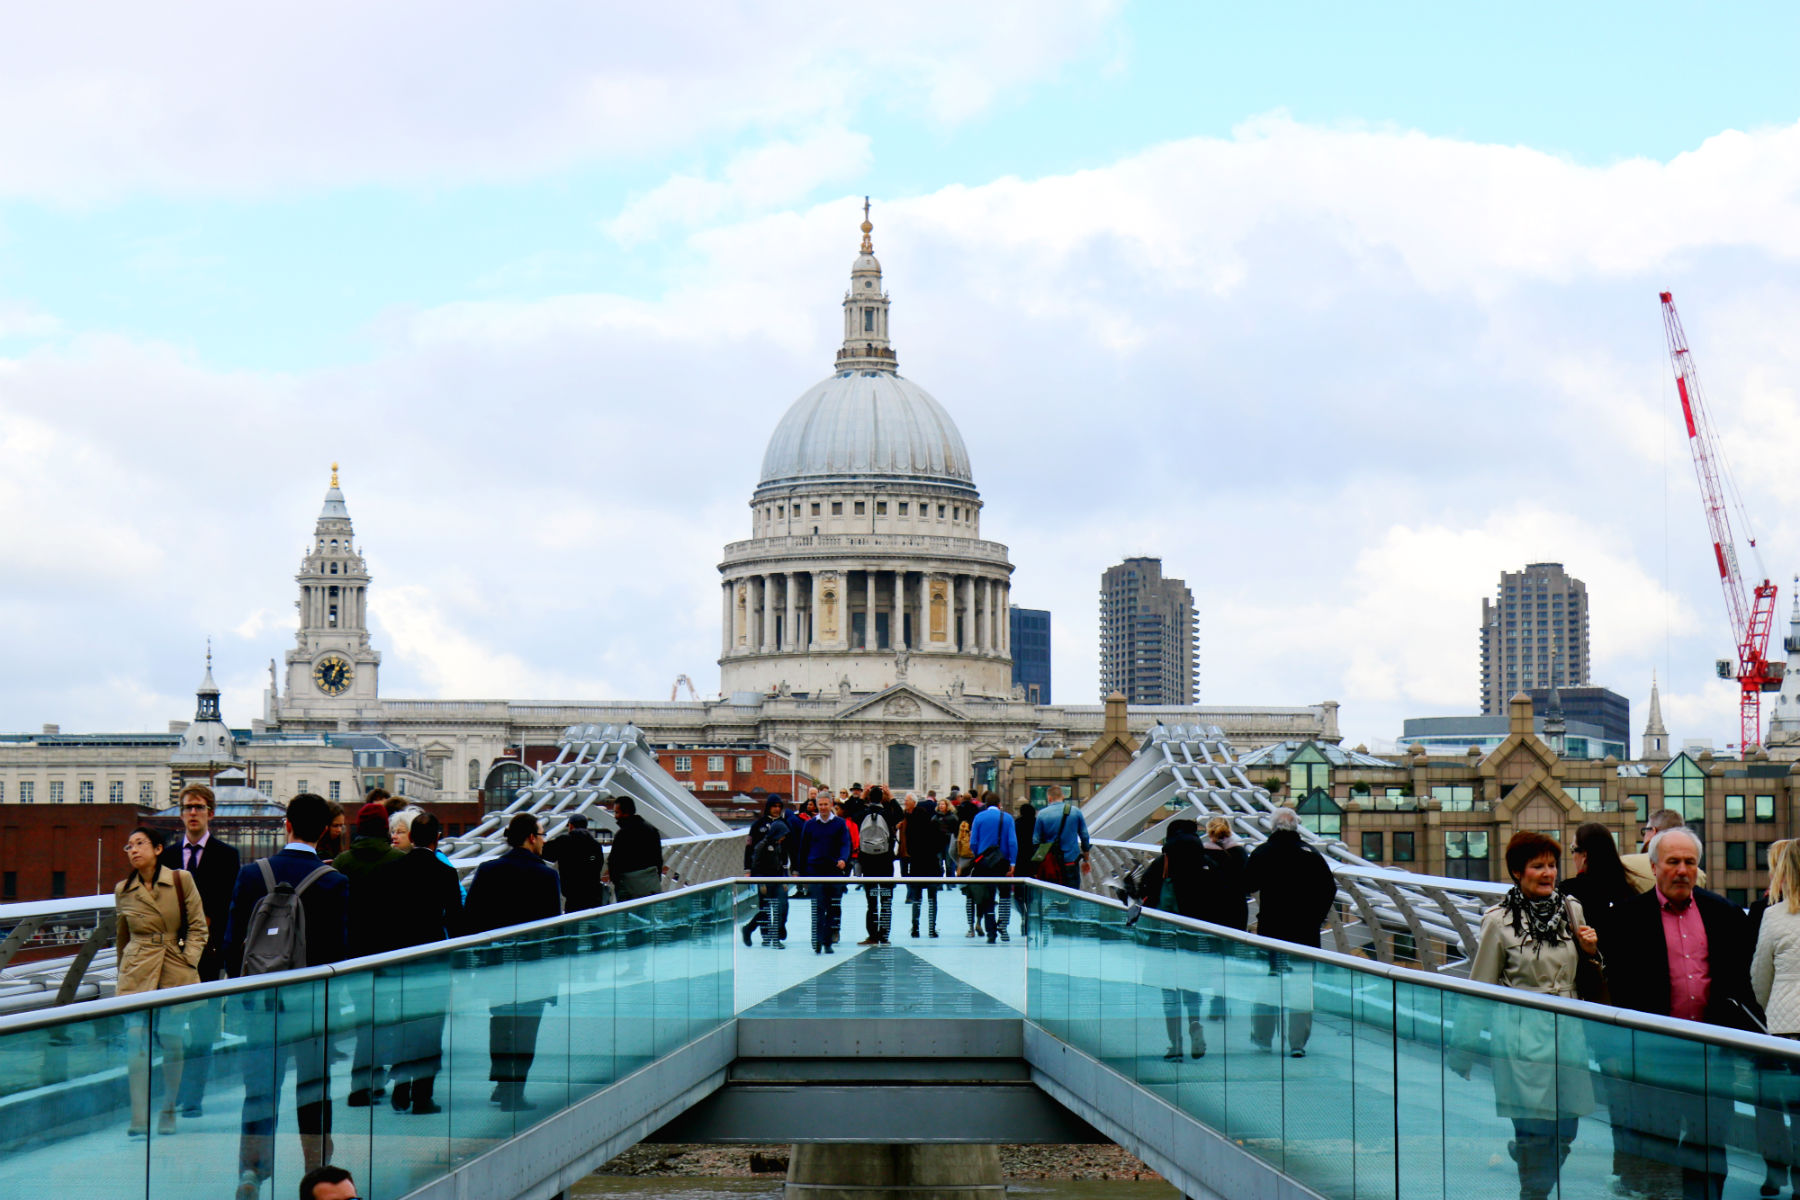 St Paul's Cathedral, as seen from Millennium Bridge, London